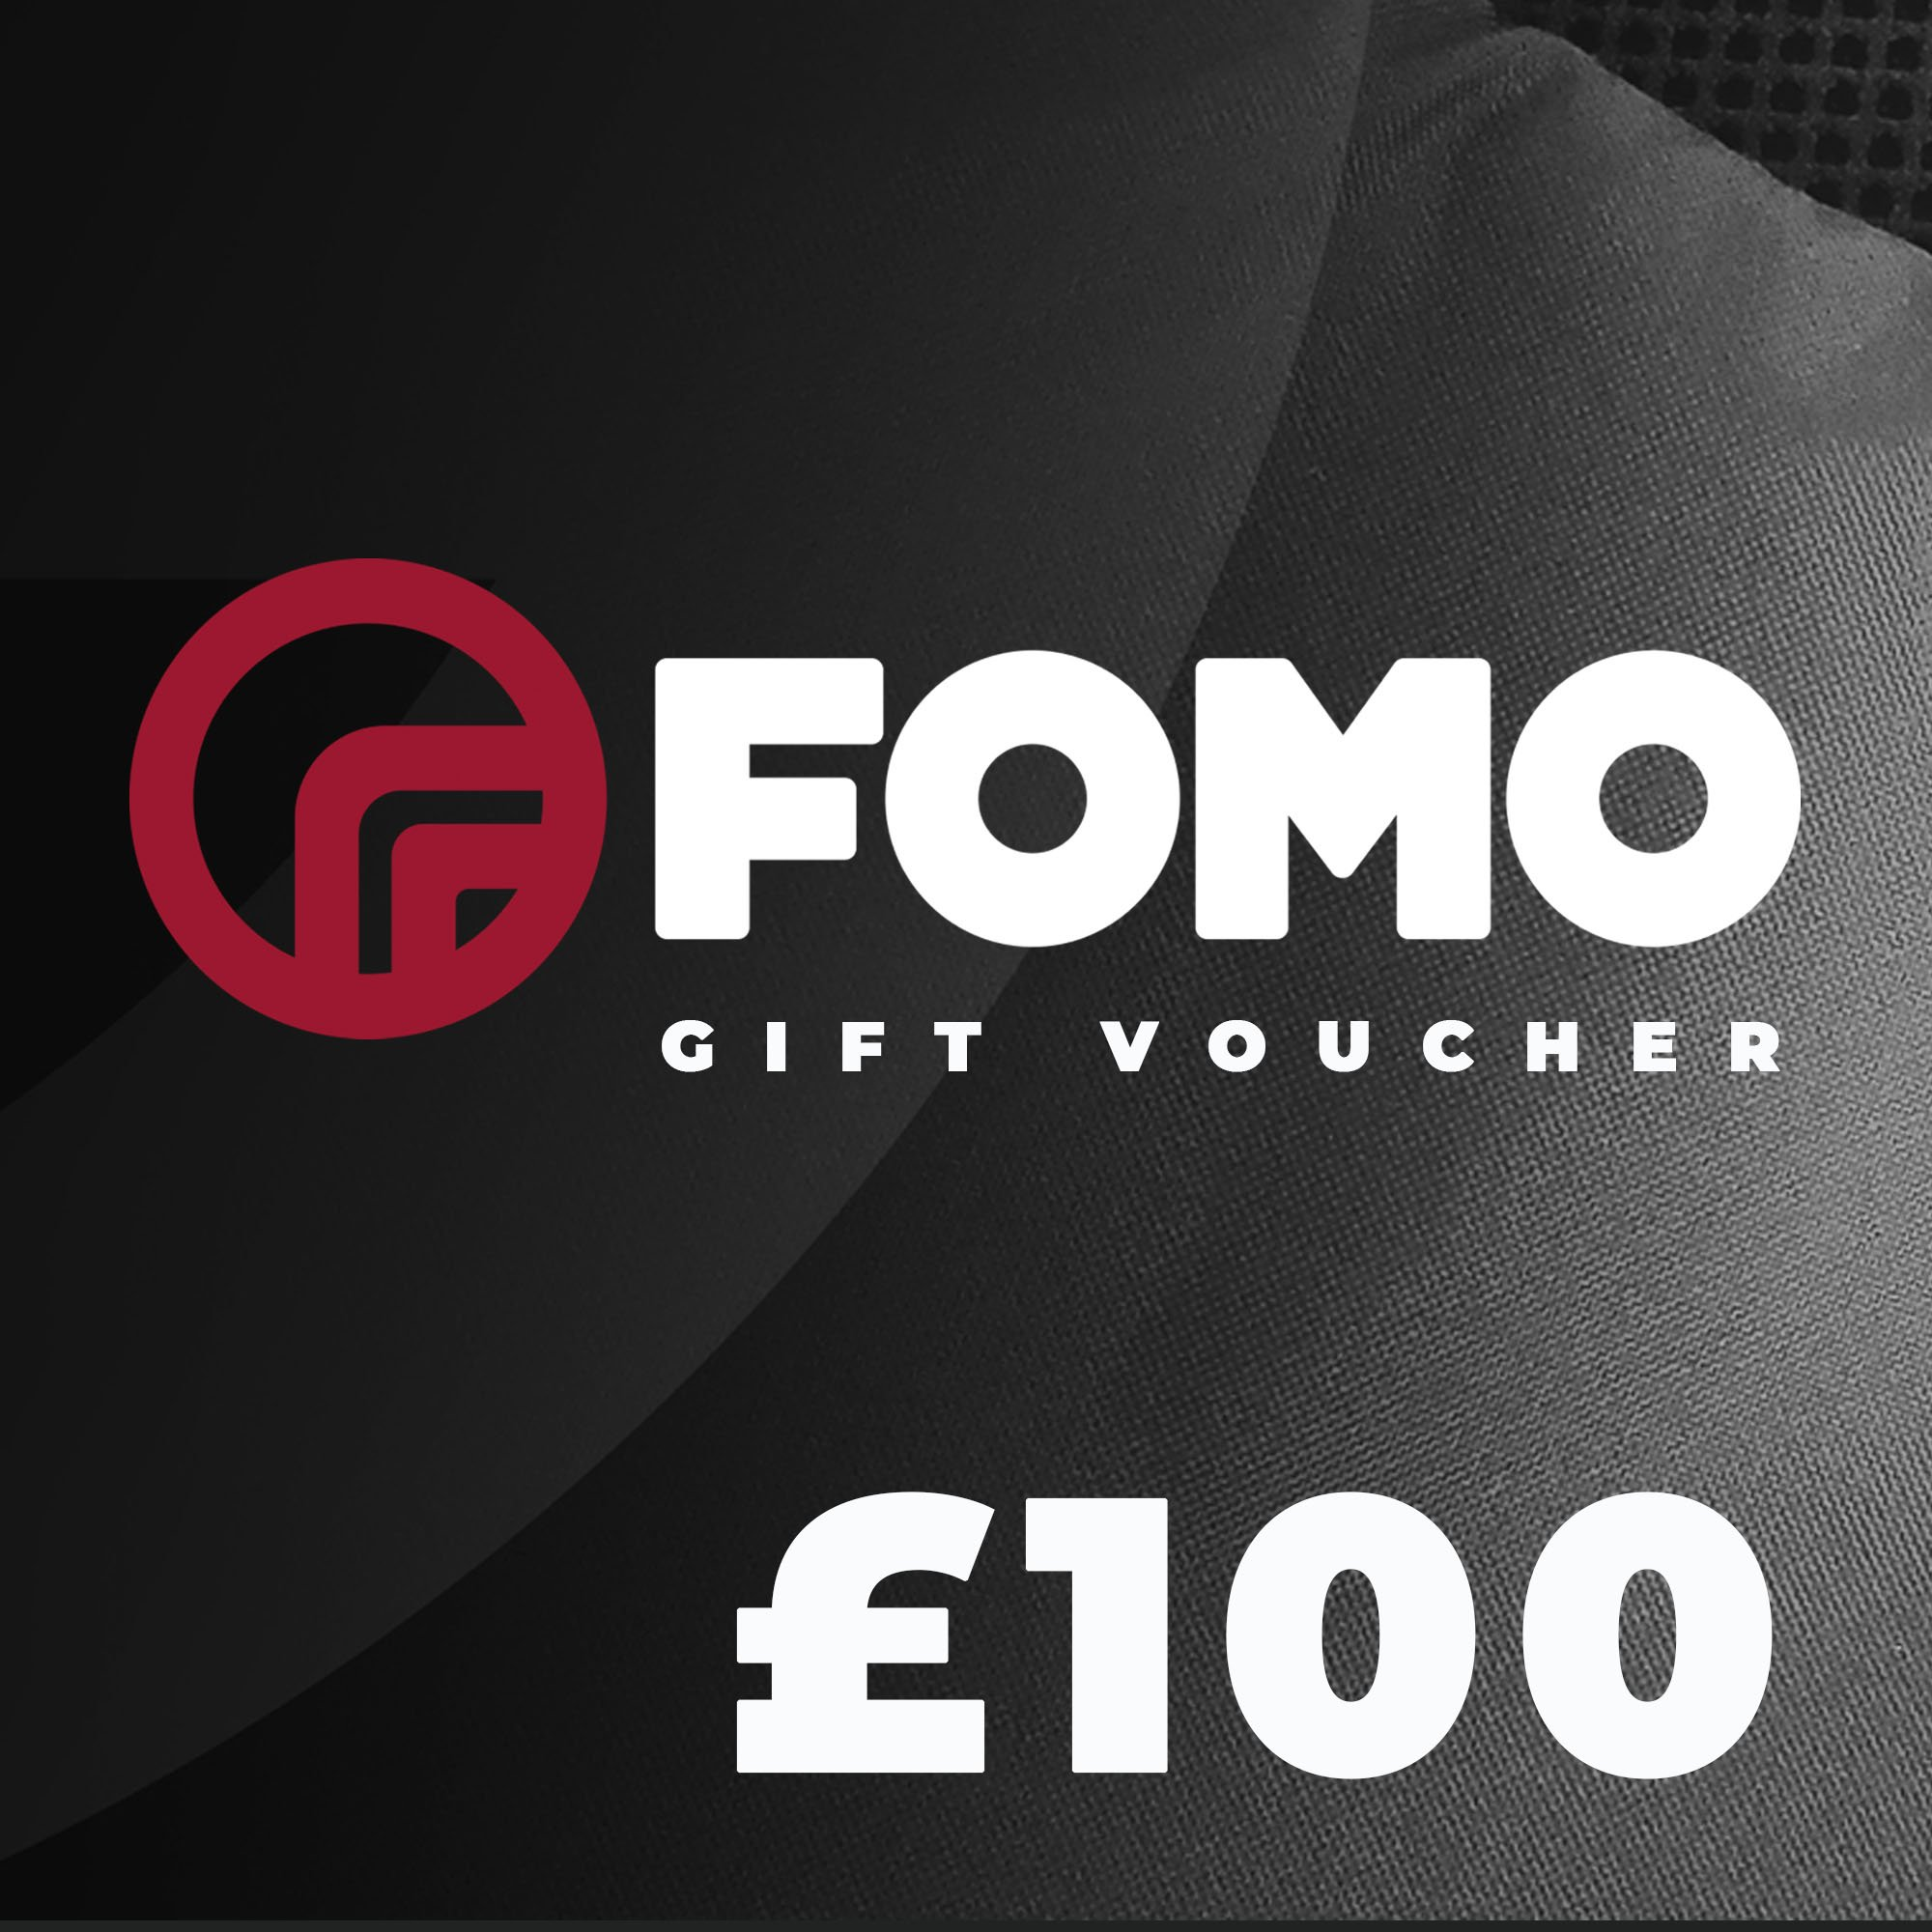 https://www.fomoprotection.com/wp-content/uploads/2019/11/Gift-Voucher-£100-.jpg